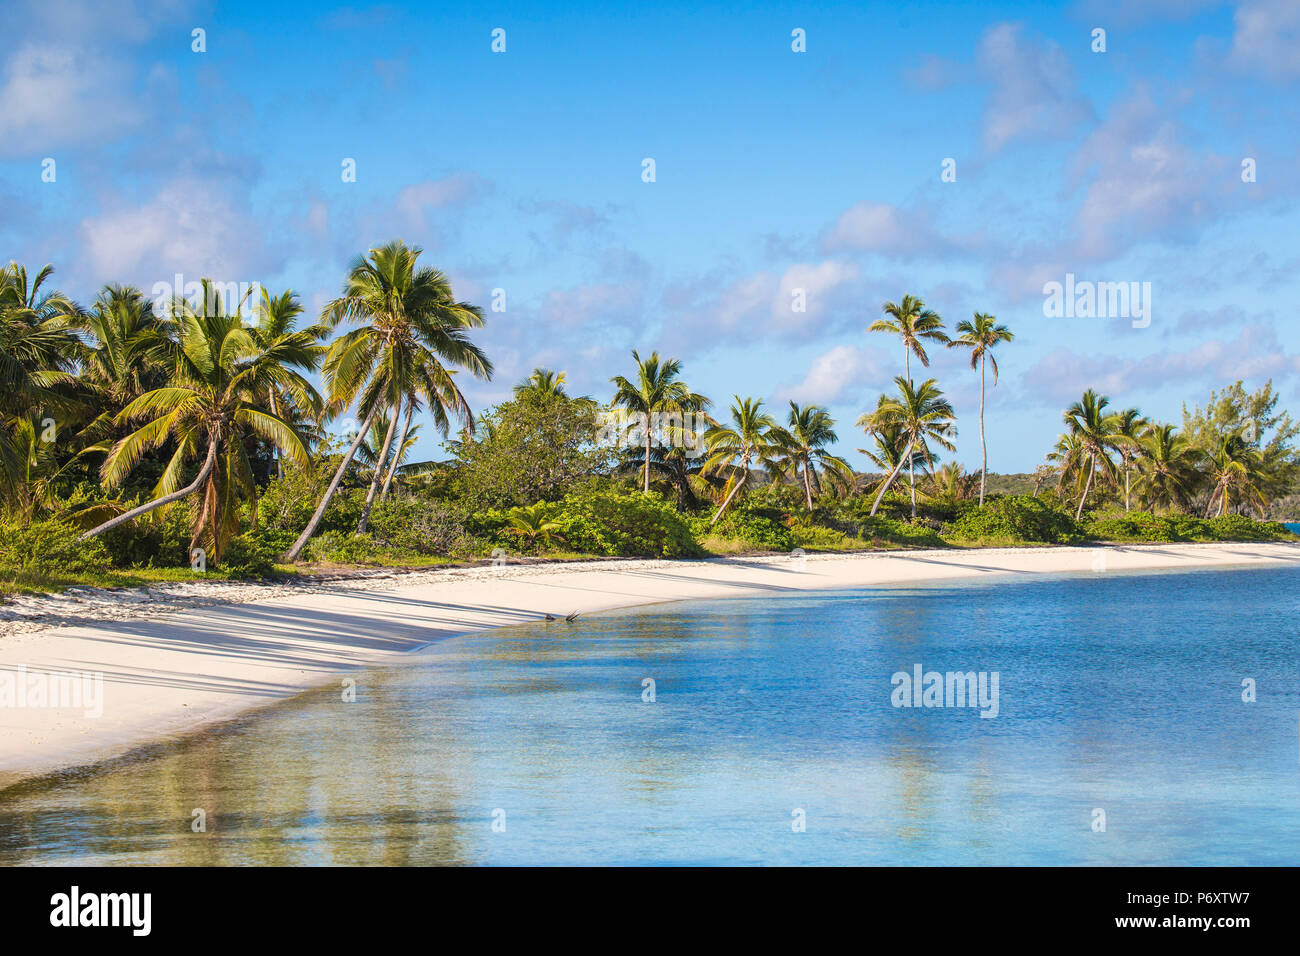 Bahamas, Abaco Islands, Elbow Cay, Tihiti beach Stock Photo